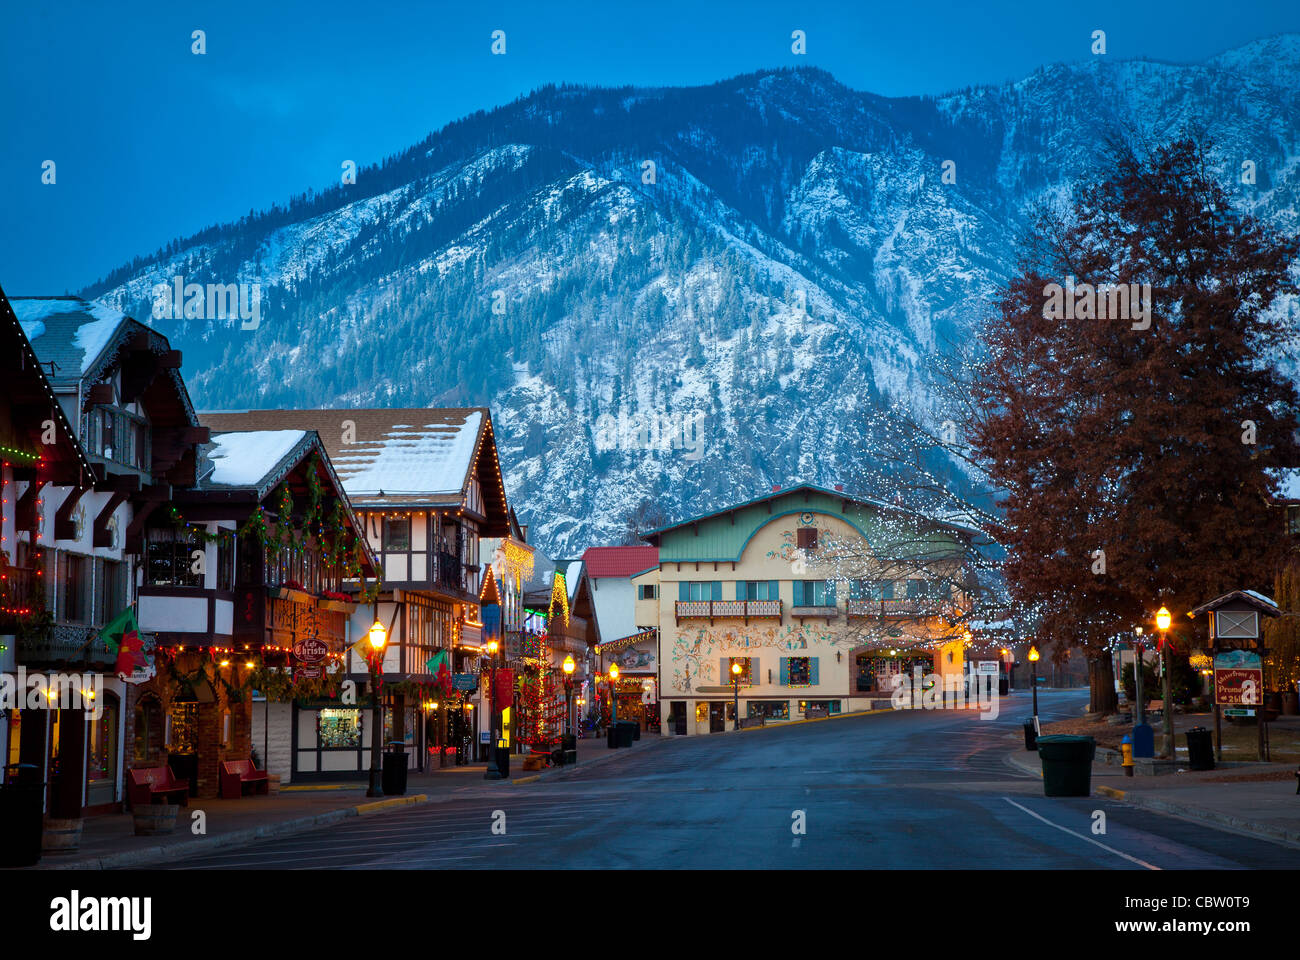 Leavenworth Christmas Lights.Christmas Lights In The Western Washington Town Of